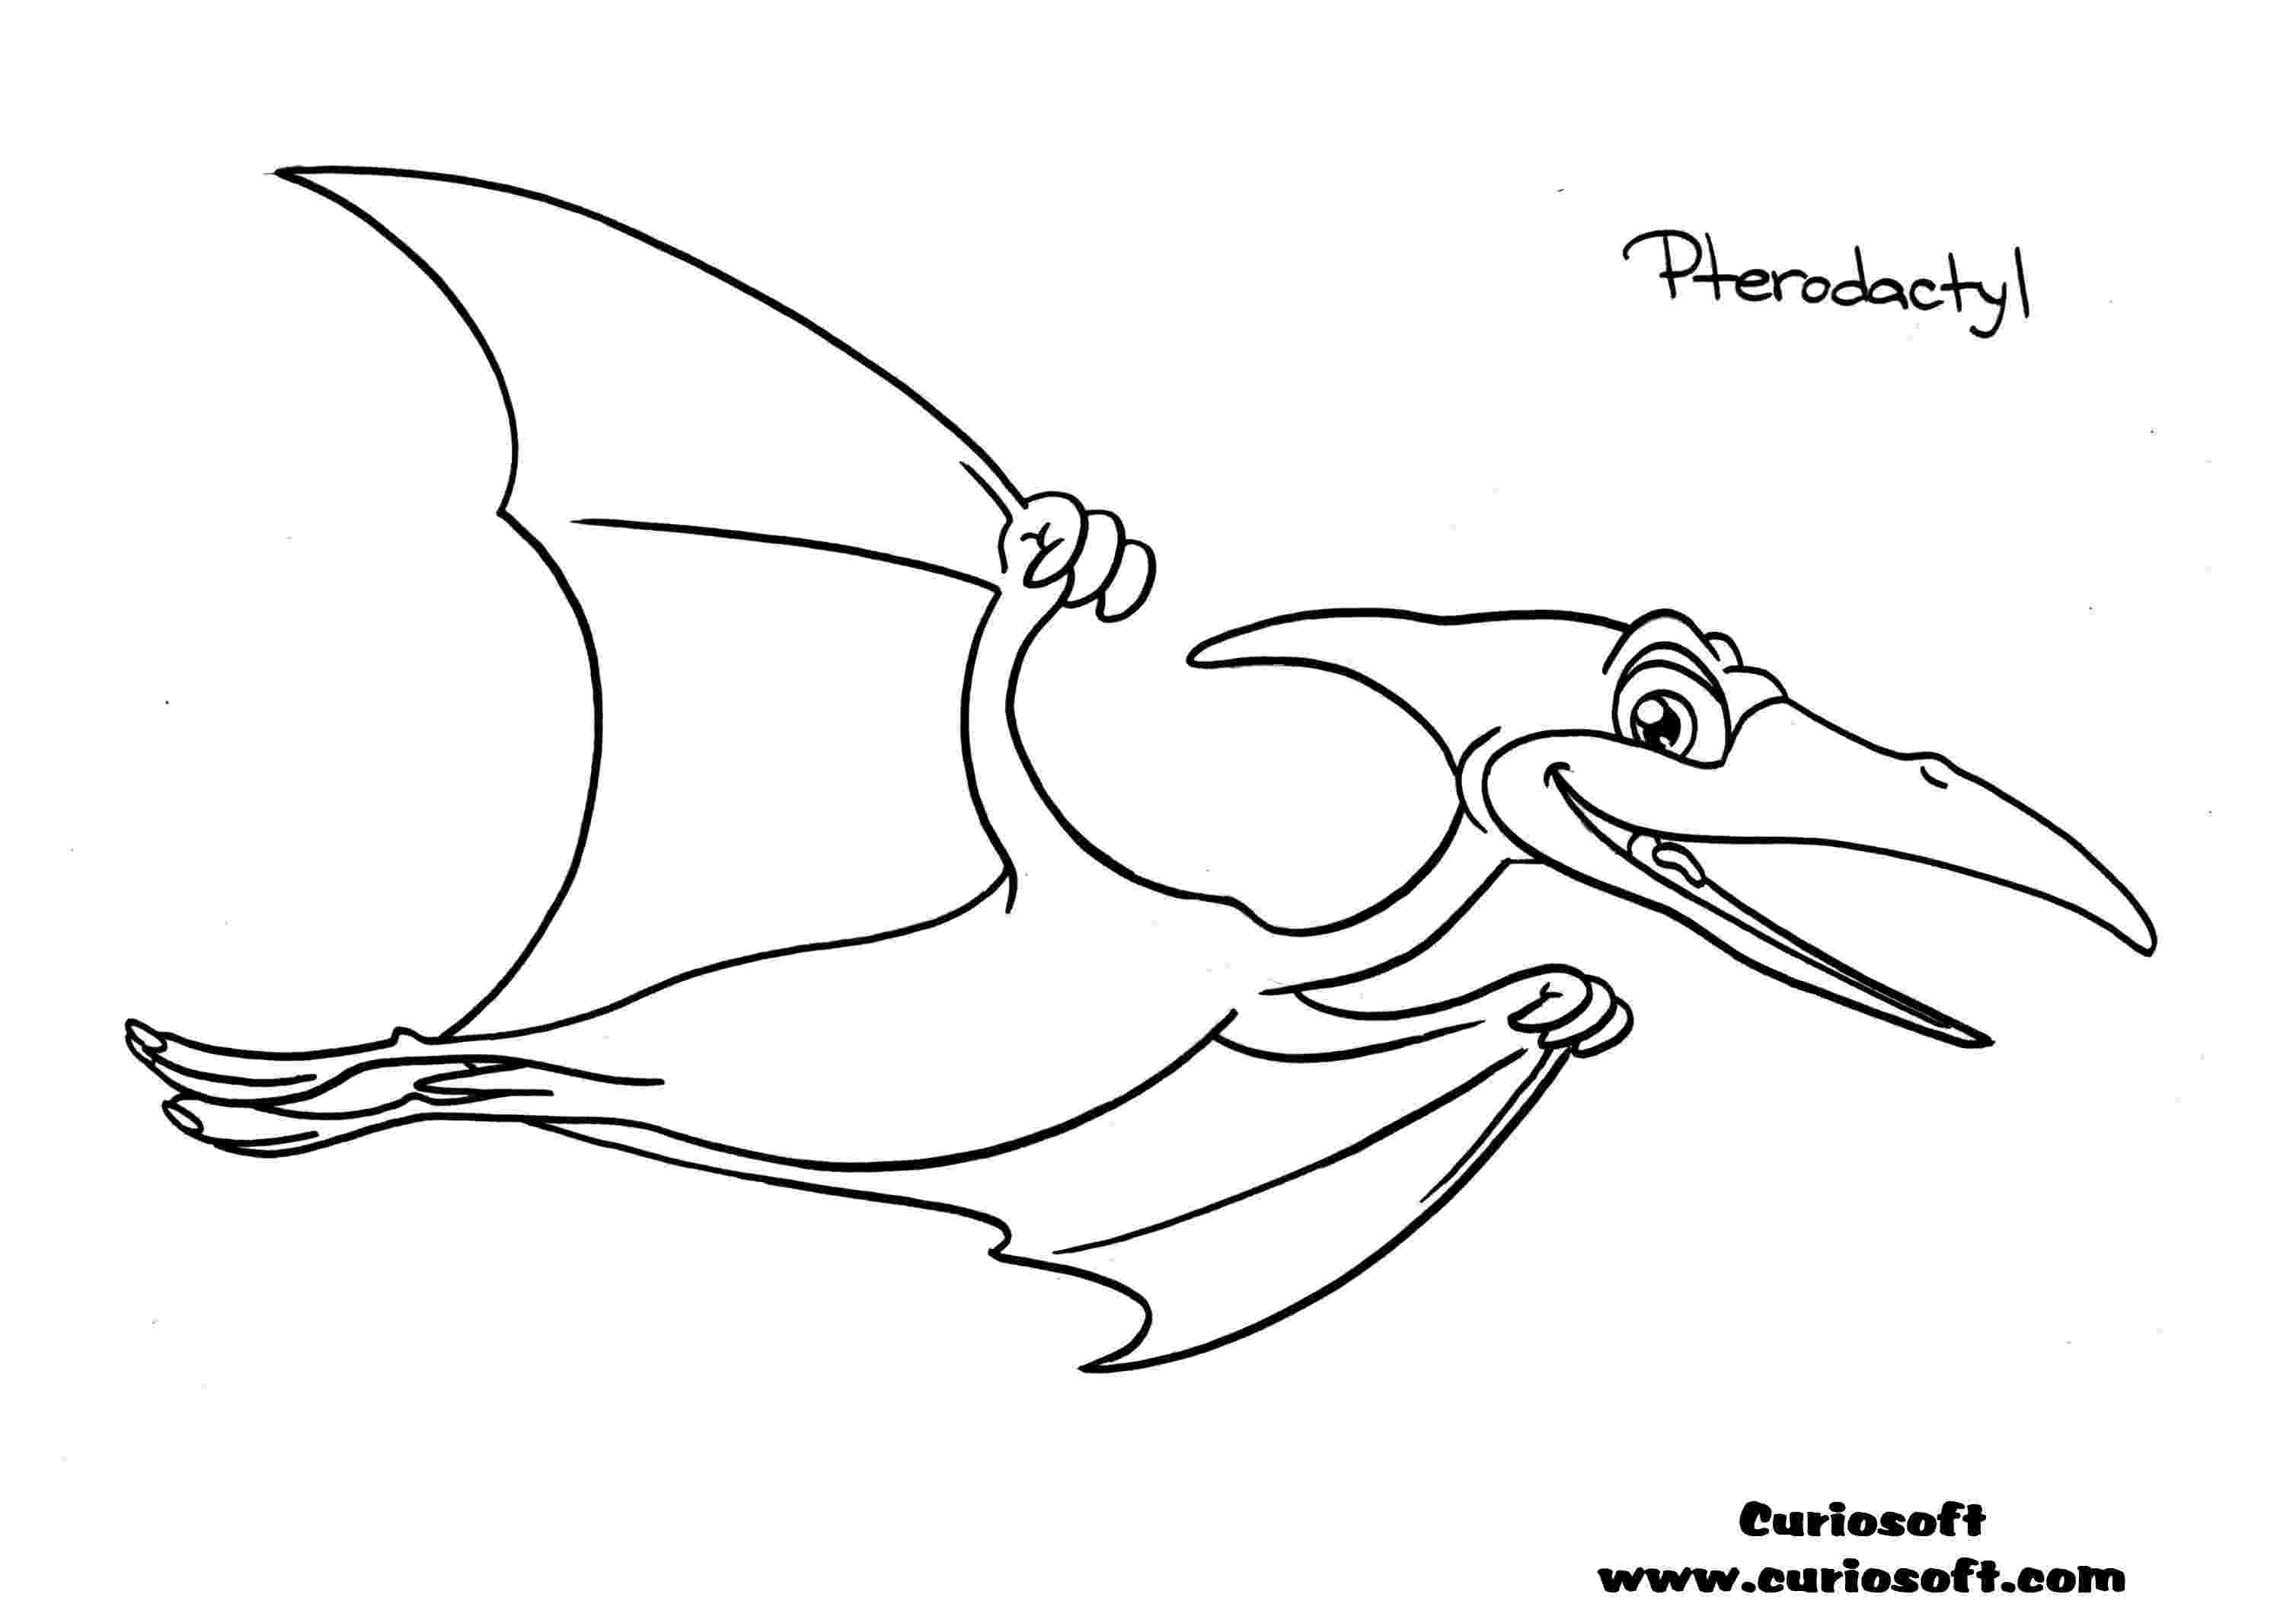 pterodactyl coloring page teradactyl dinosaur information dinosaurs pictures and facts pterodactyl coloring page